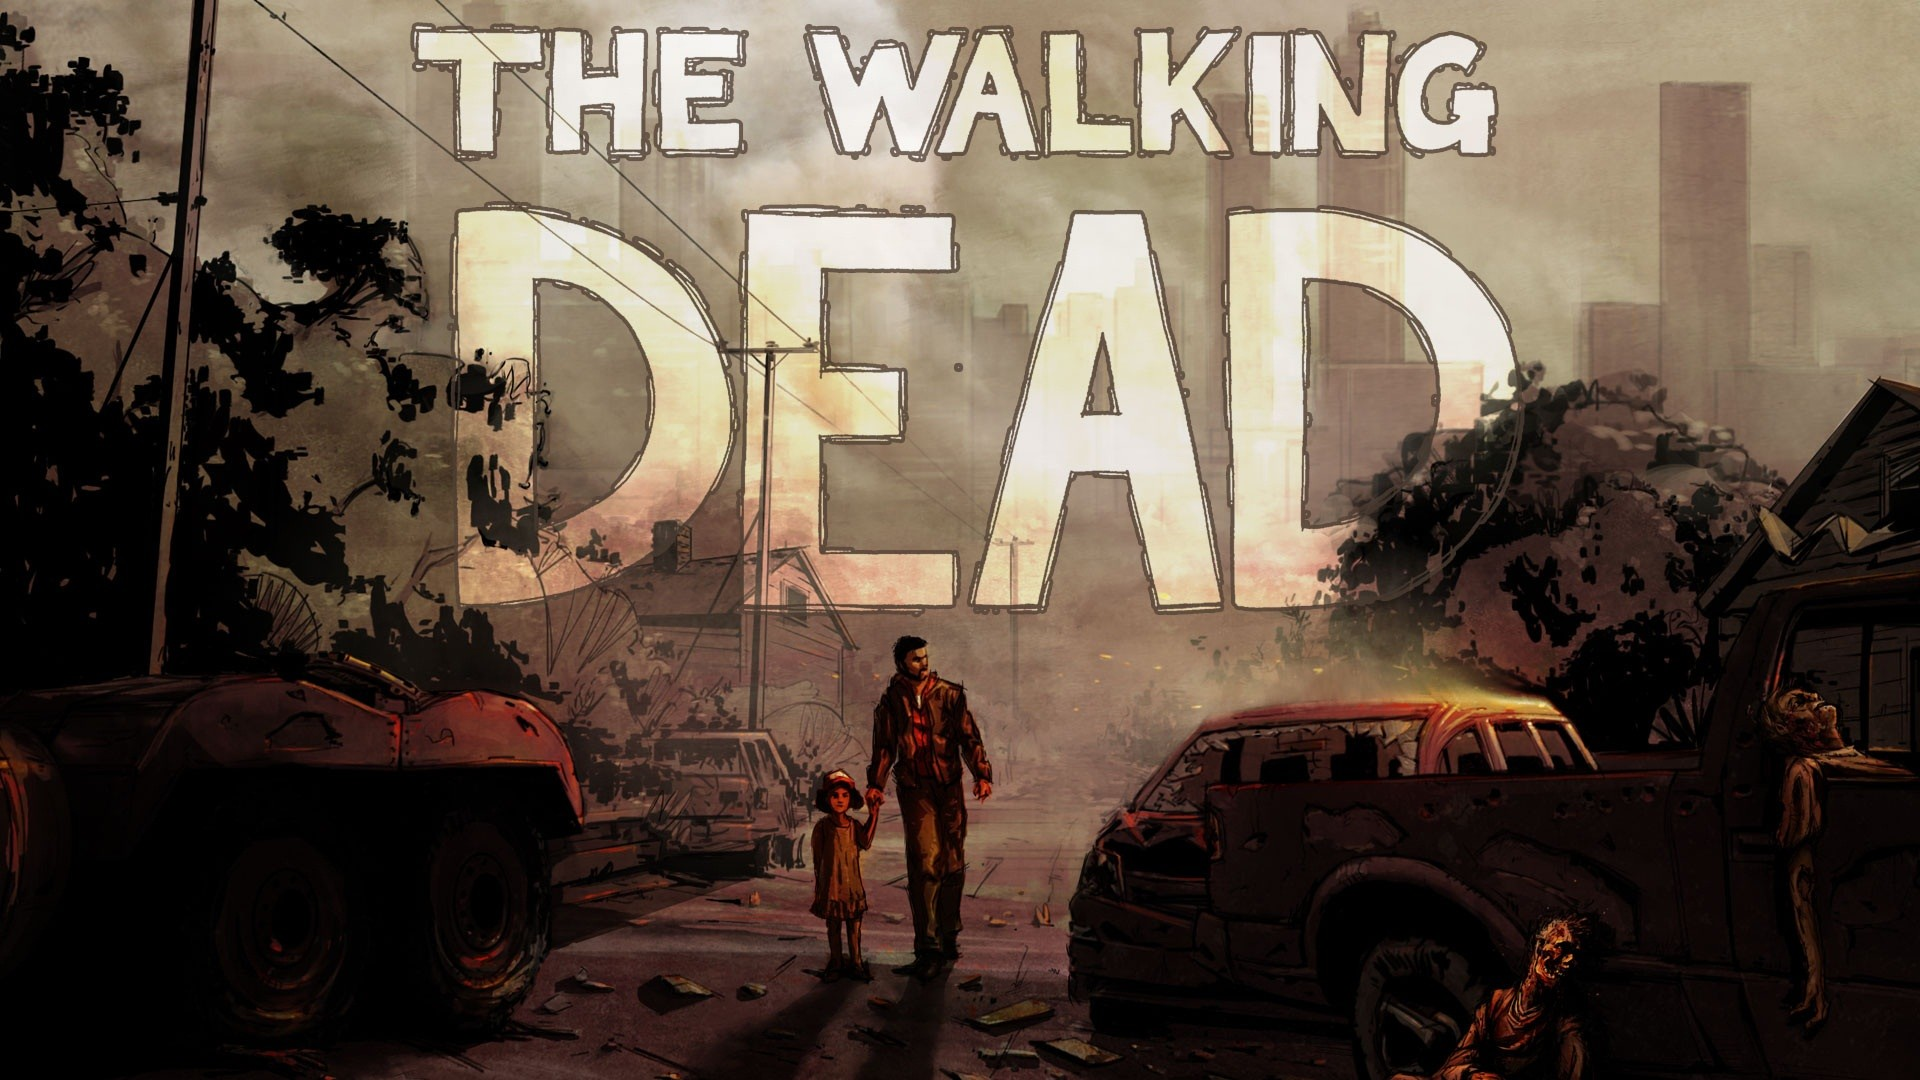 undefined The Walking Dead Game Wallpapers (29 Wallpapers)   Adorable  Wallpapers